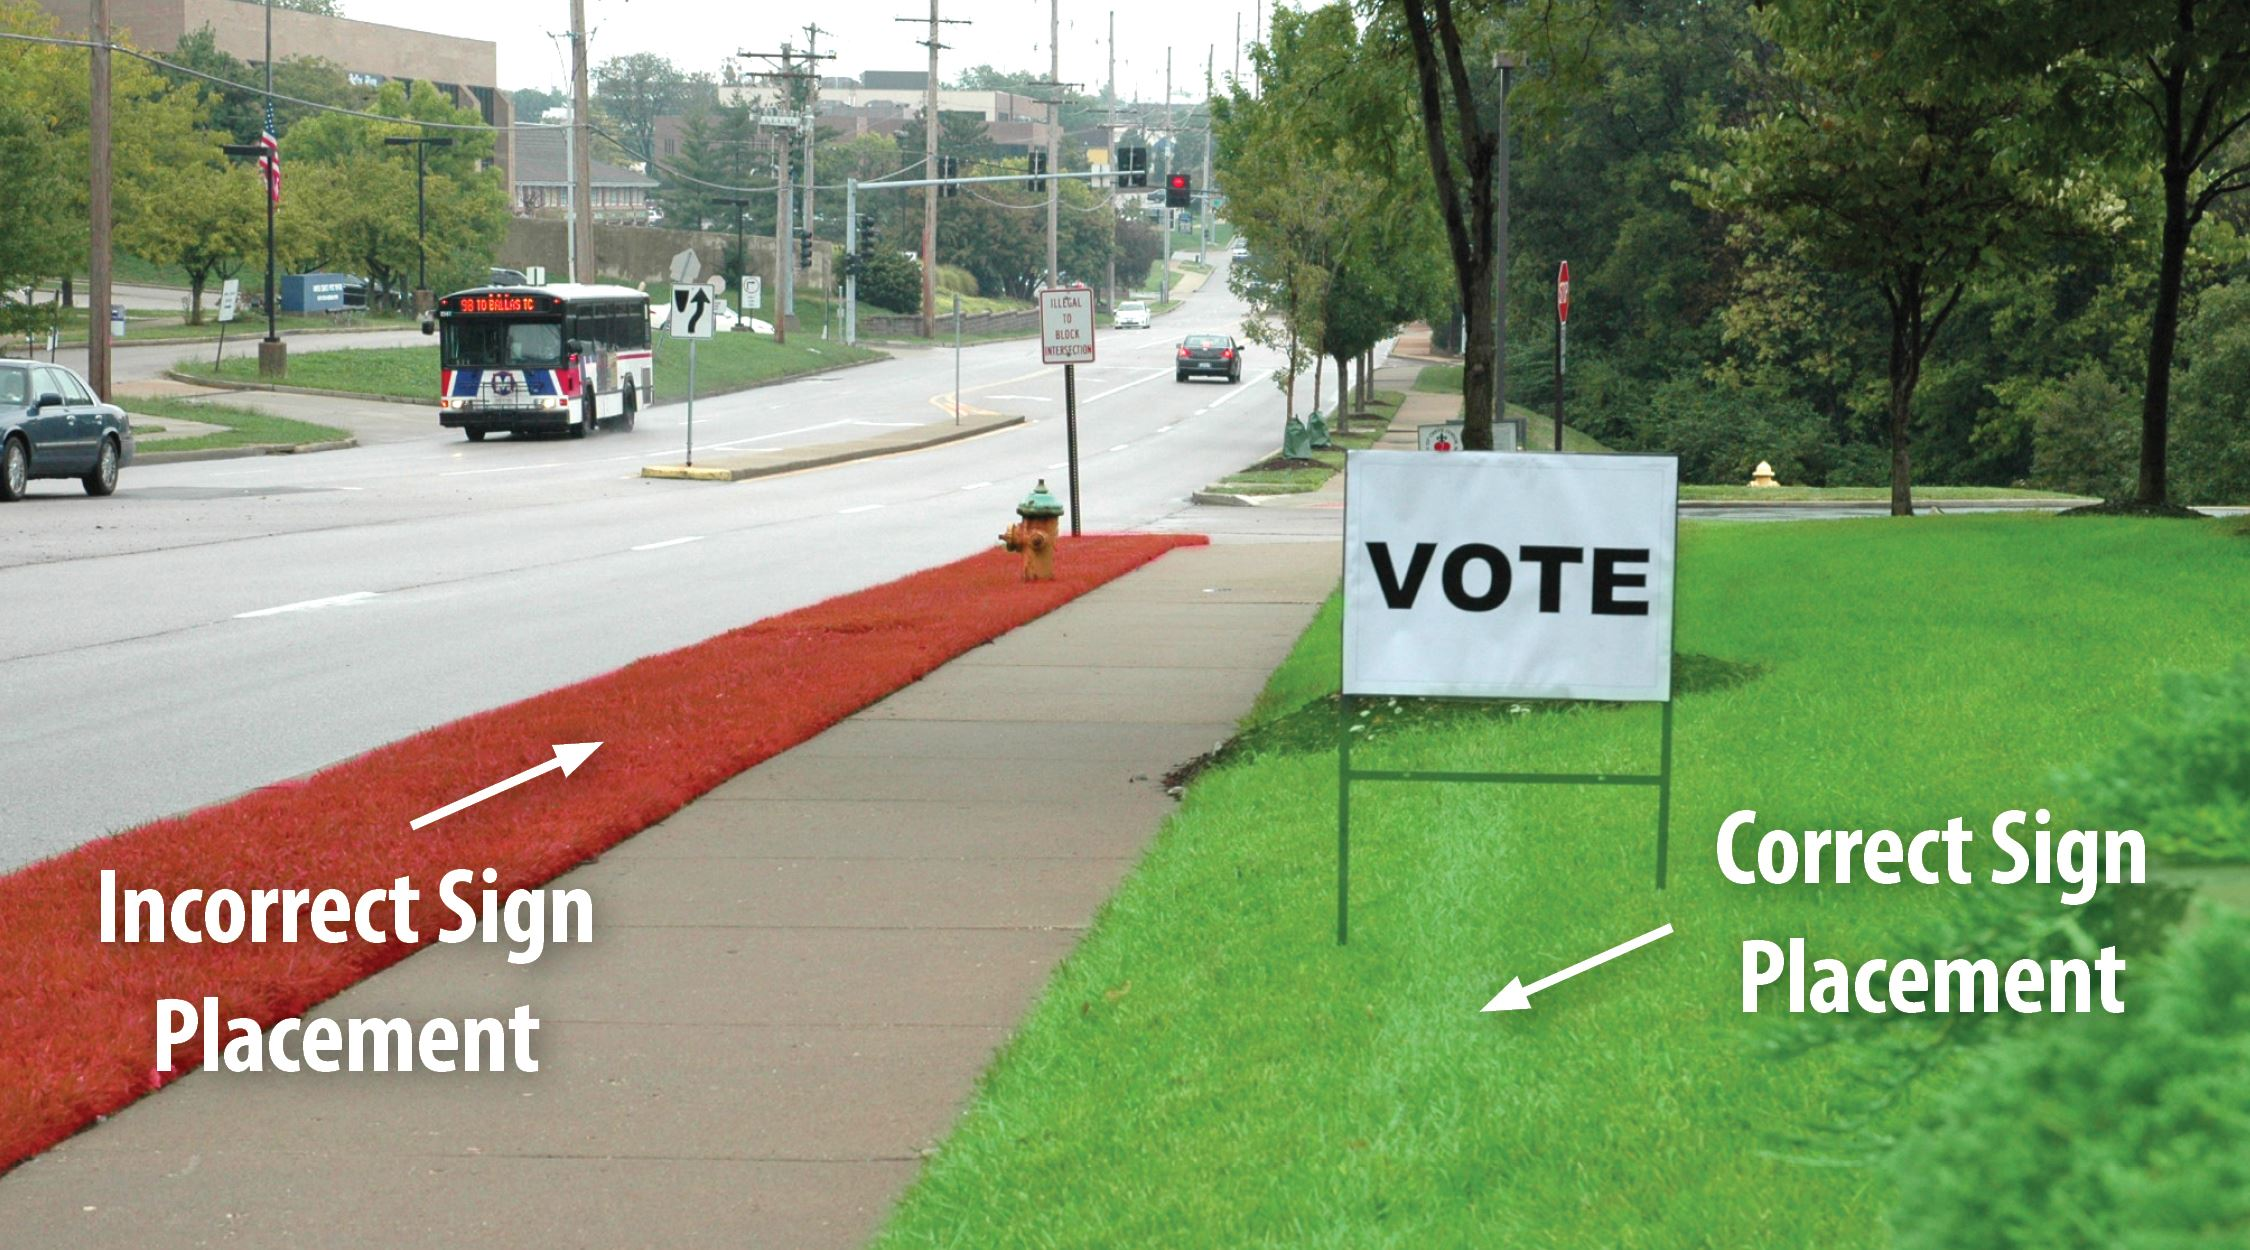 The right-of-way is incorrect placement for election signs.